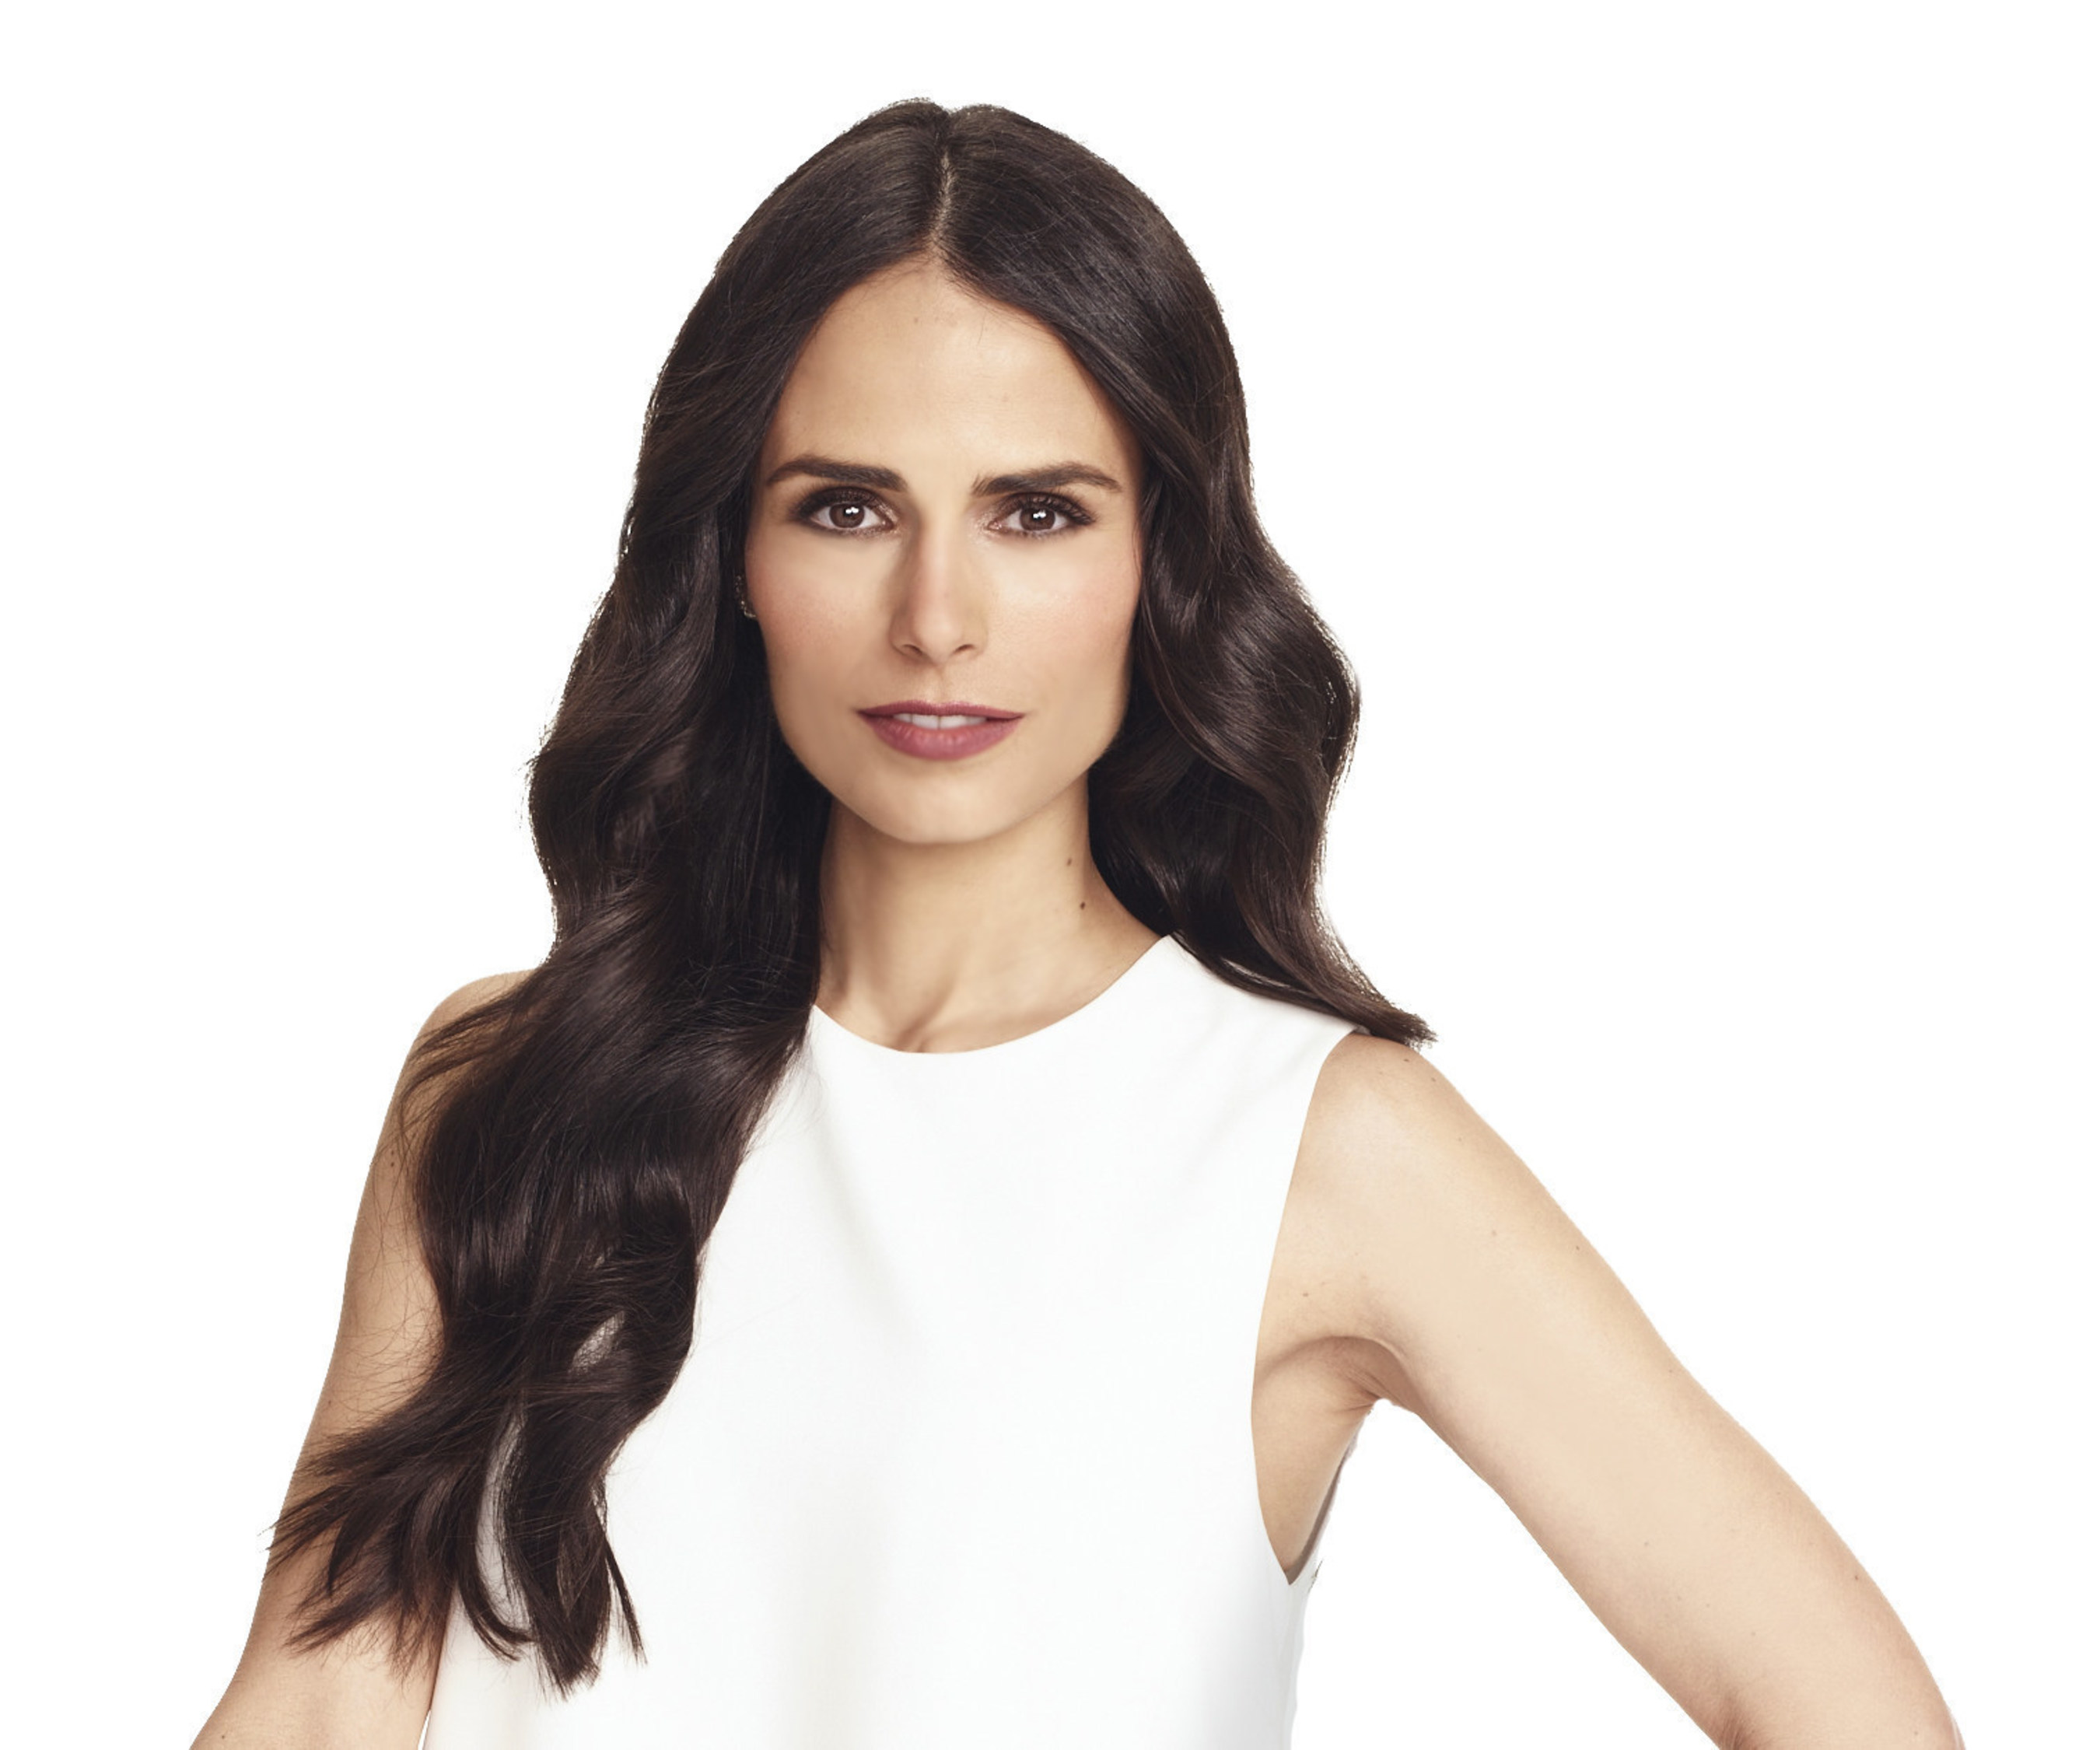 Actress and POND'S(R) ambassador Jordana Brewster inspires women to go beyond age limits